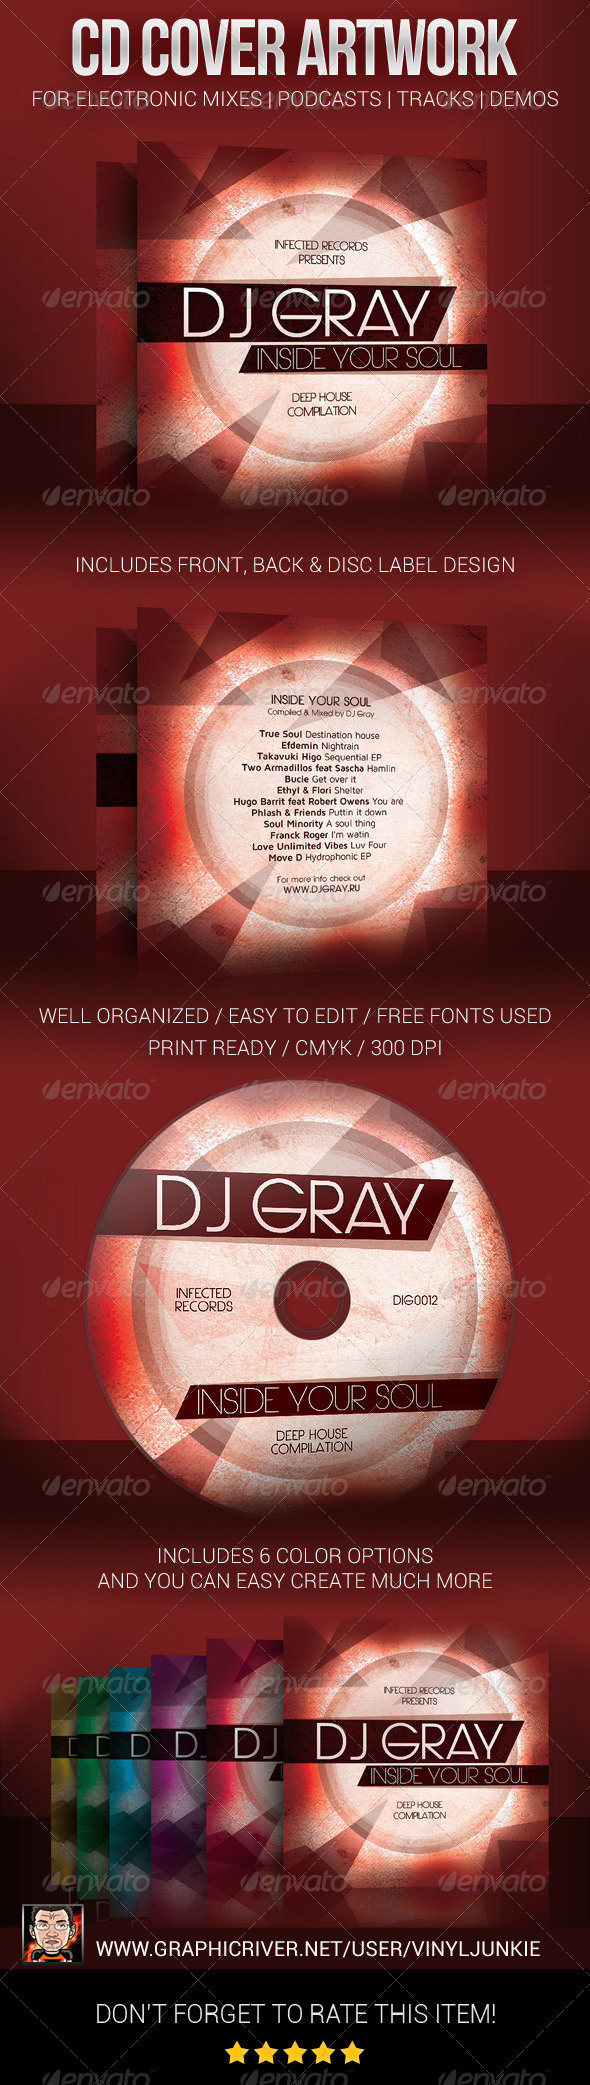 GraphicRiver DJ Mix CD Cover Artwork Template 5816765